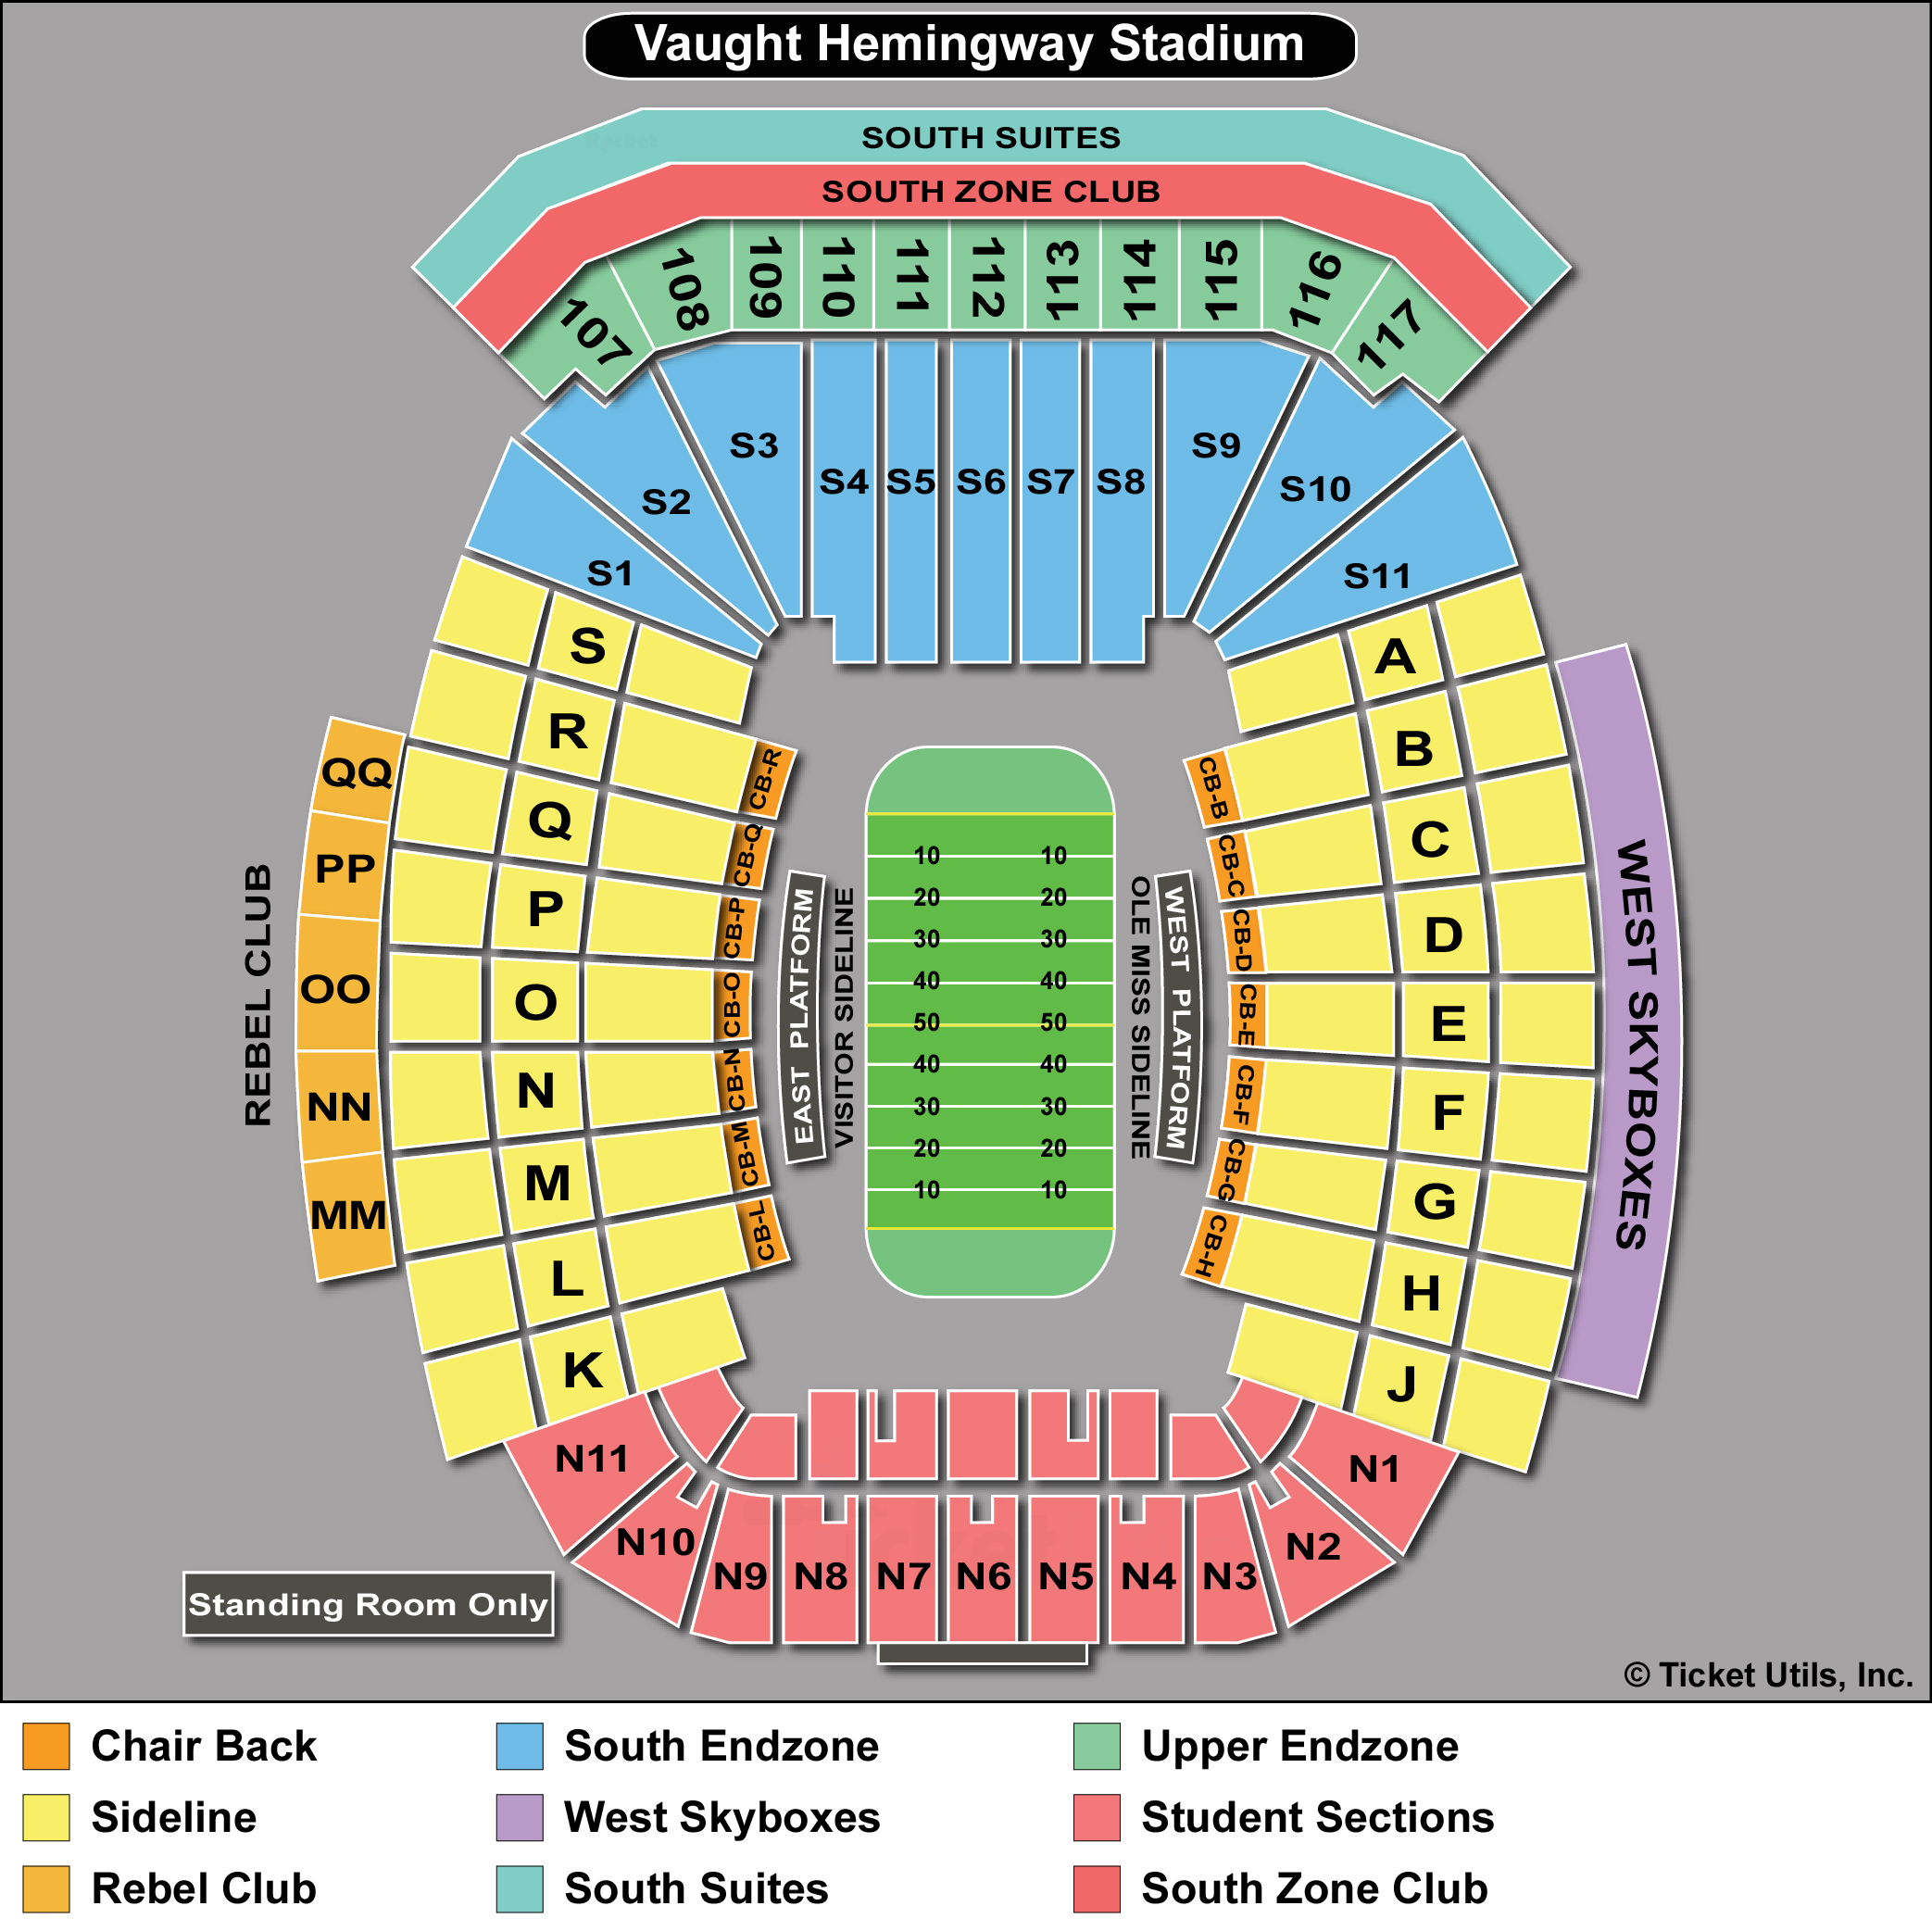 Vaught-Hemingway Stadium Seating Chart